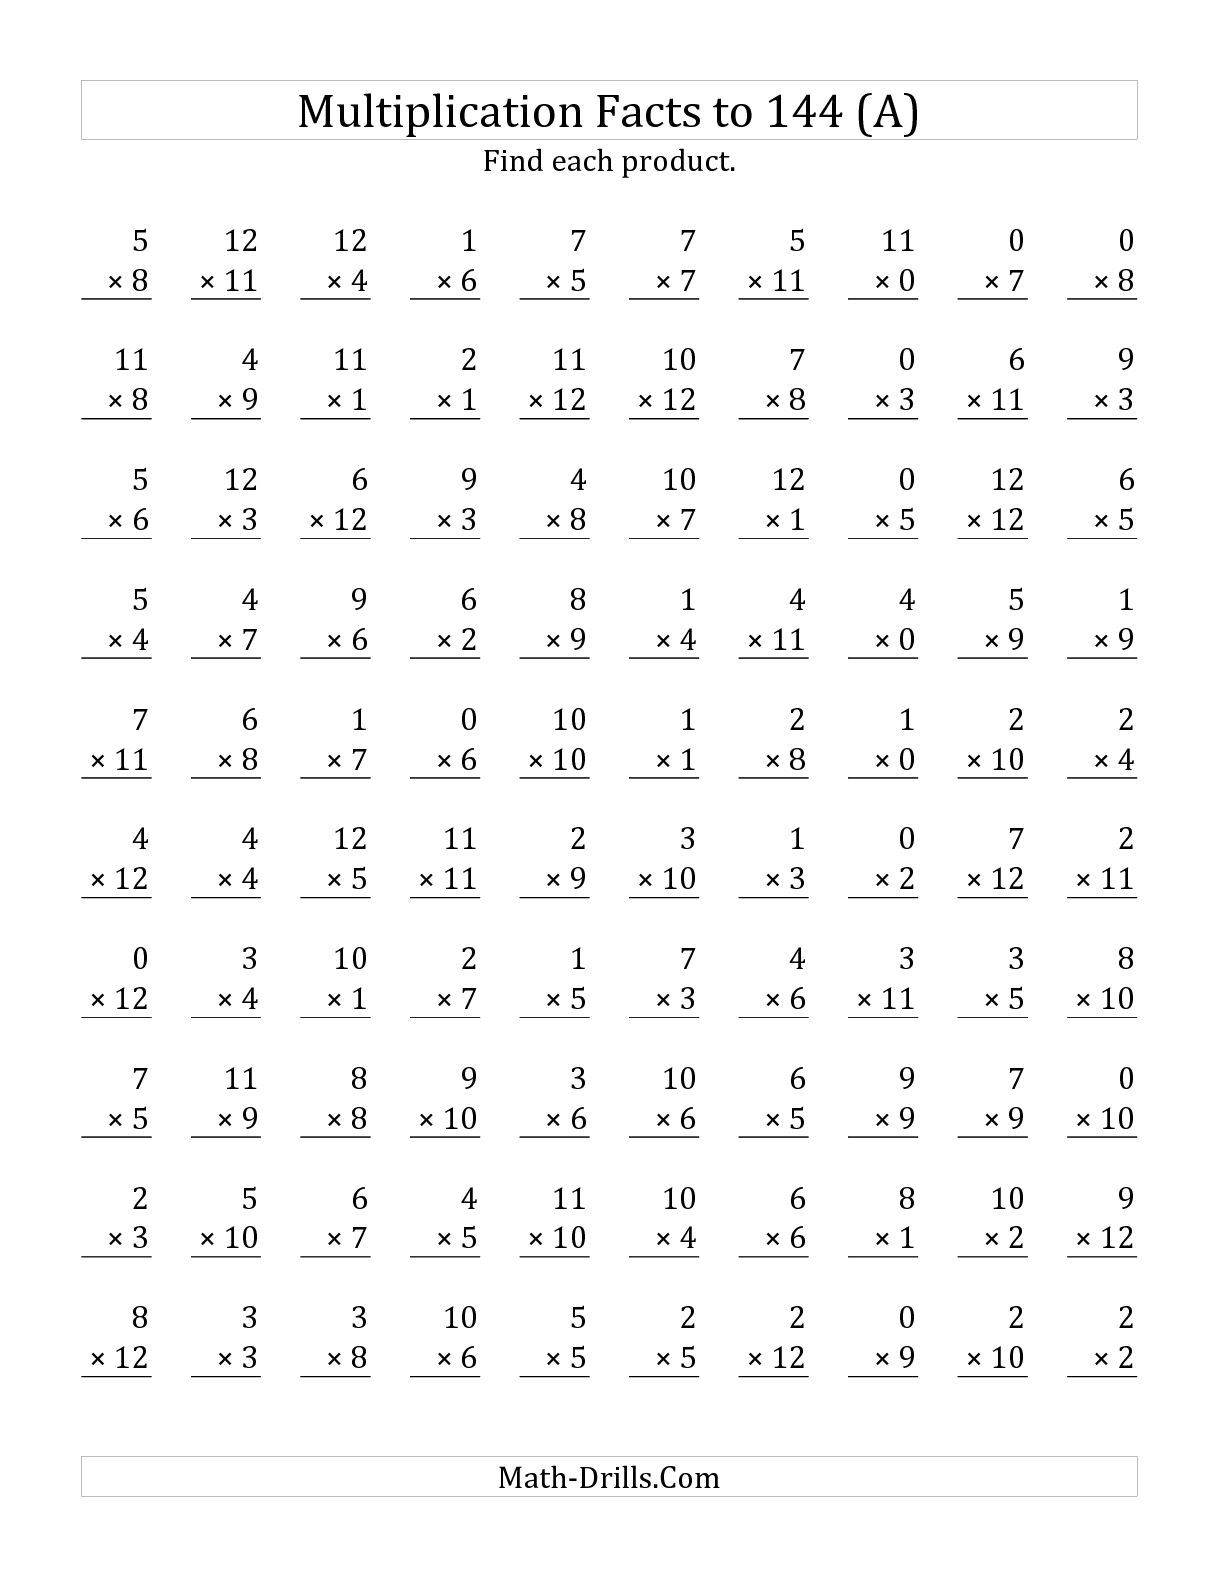 The Multiplication Facts To 144 Including Zeros A Math Worksheet From The Multiplication